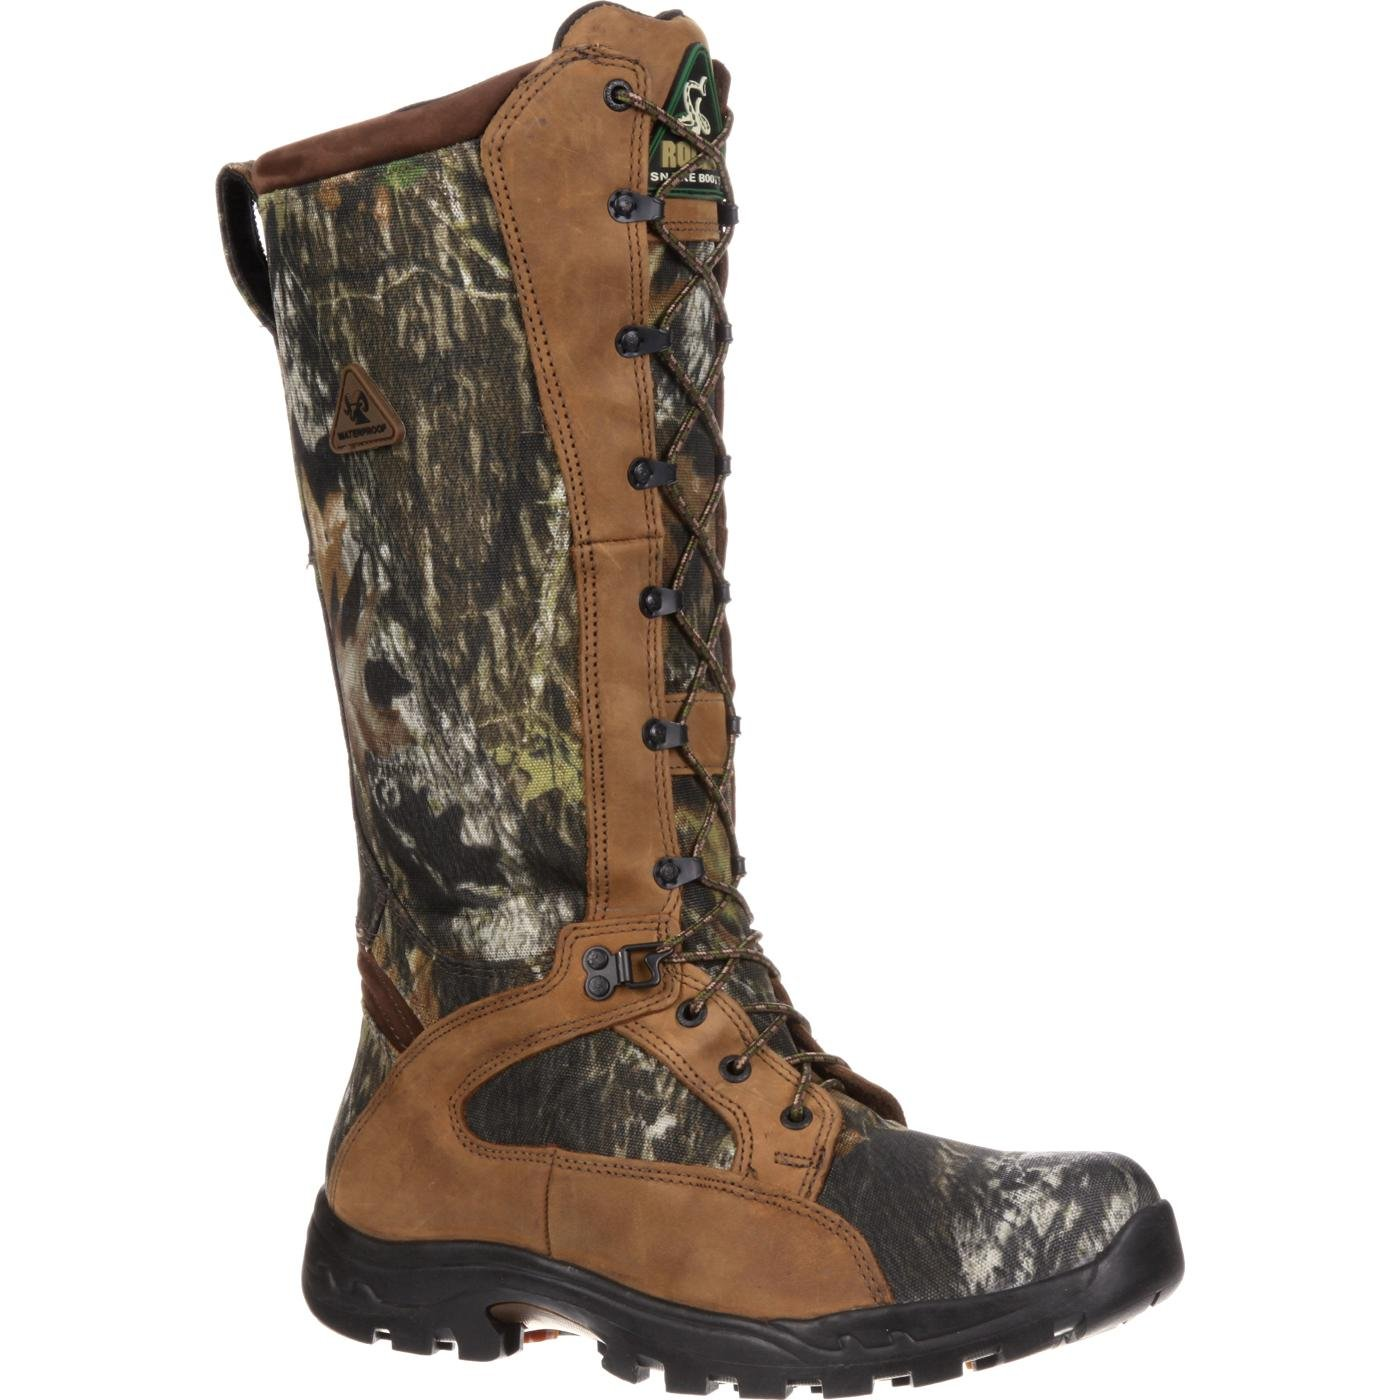 ROCKY Men's Waterproof Snakeproof Hunting Boot Knee High, Mossy Oak Breakup, 8 W US by ROCKY